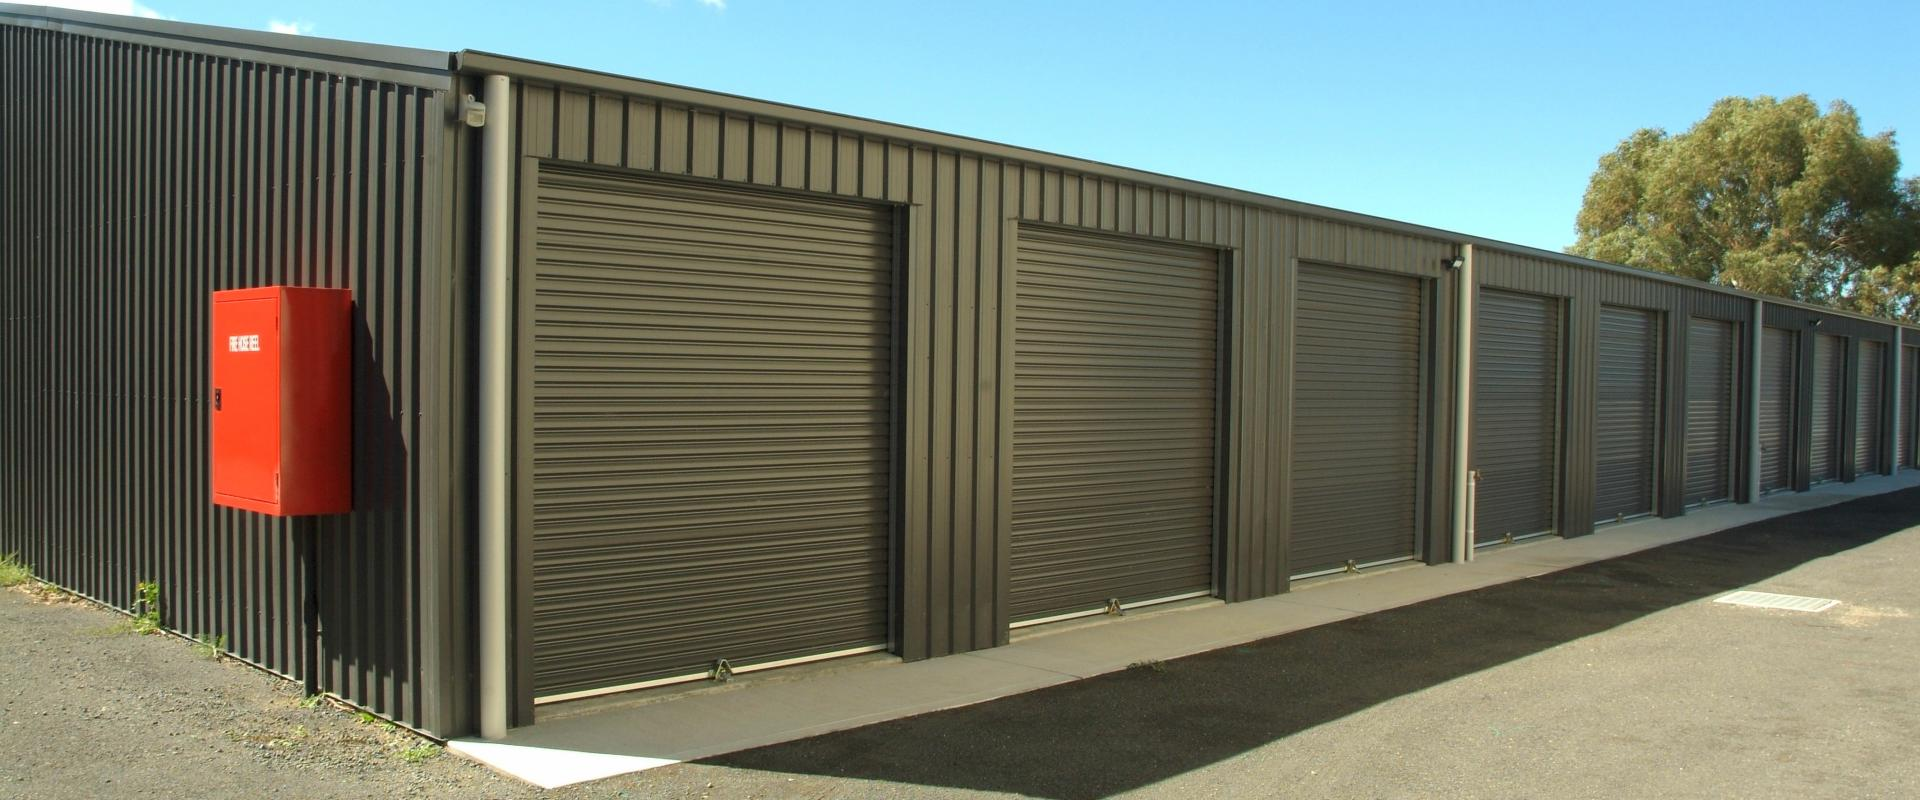 lease ez landlord rental storage forms form rent facility for pin agreement garage